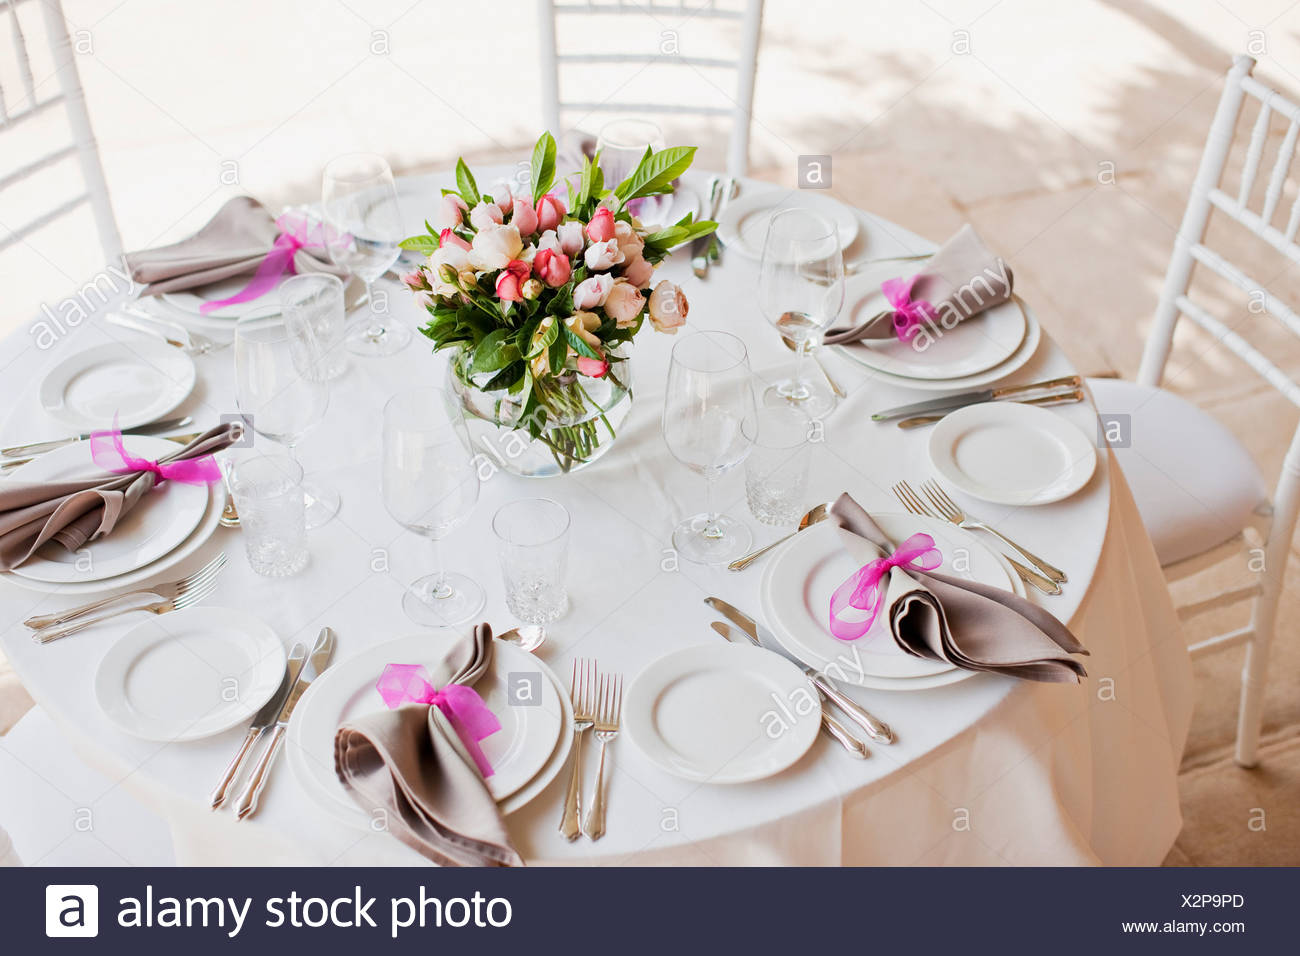 Place setting and centerpiece at wedding reception - Stock Image